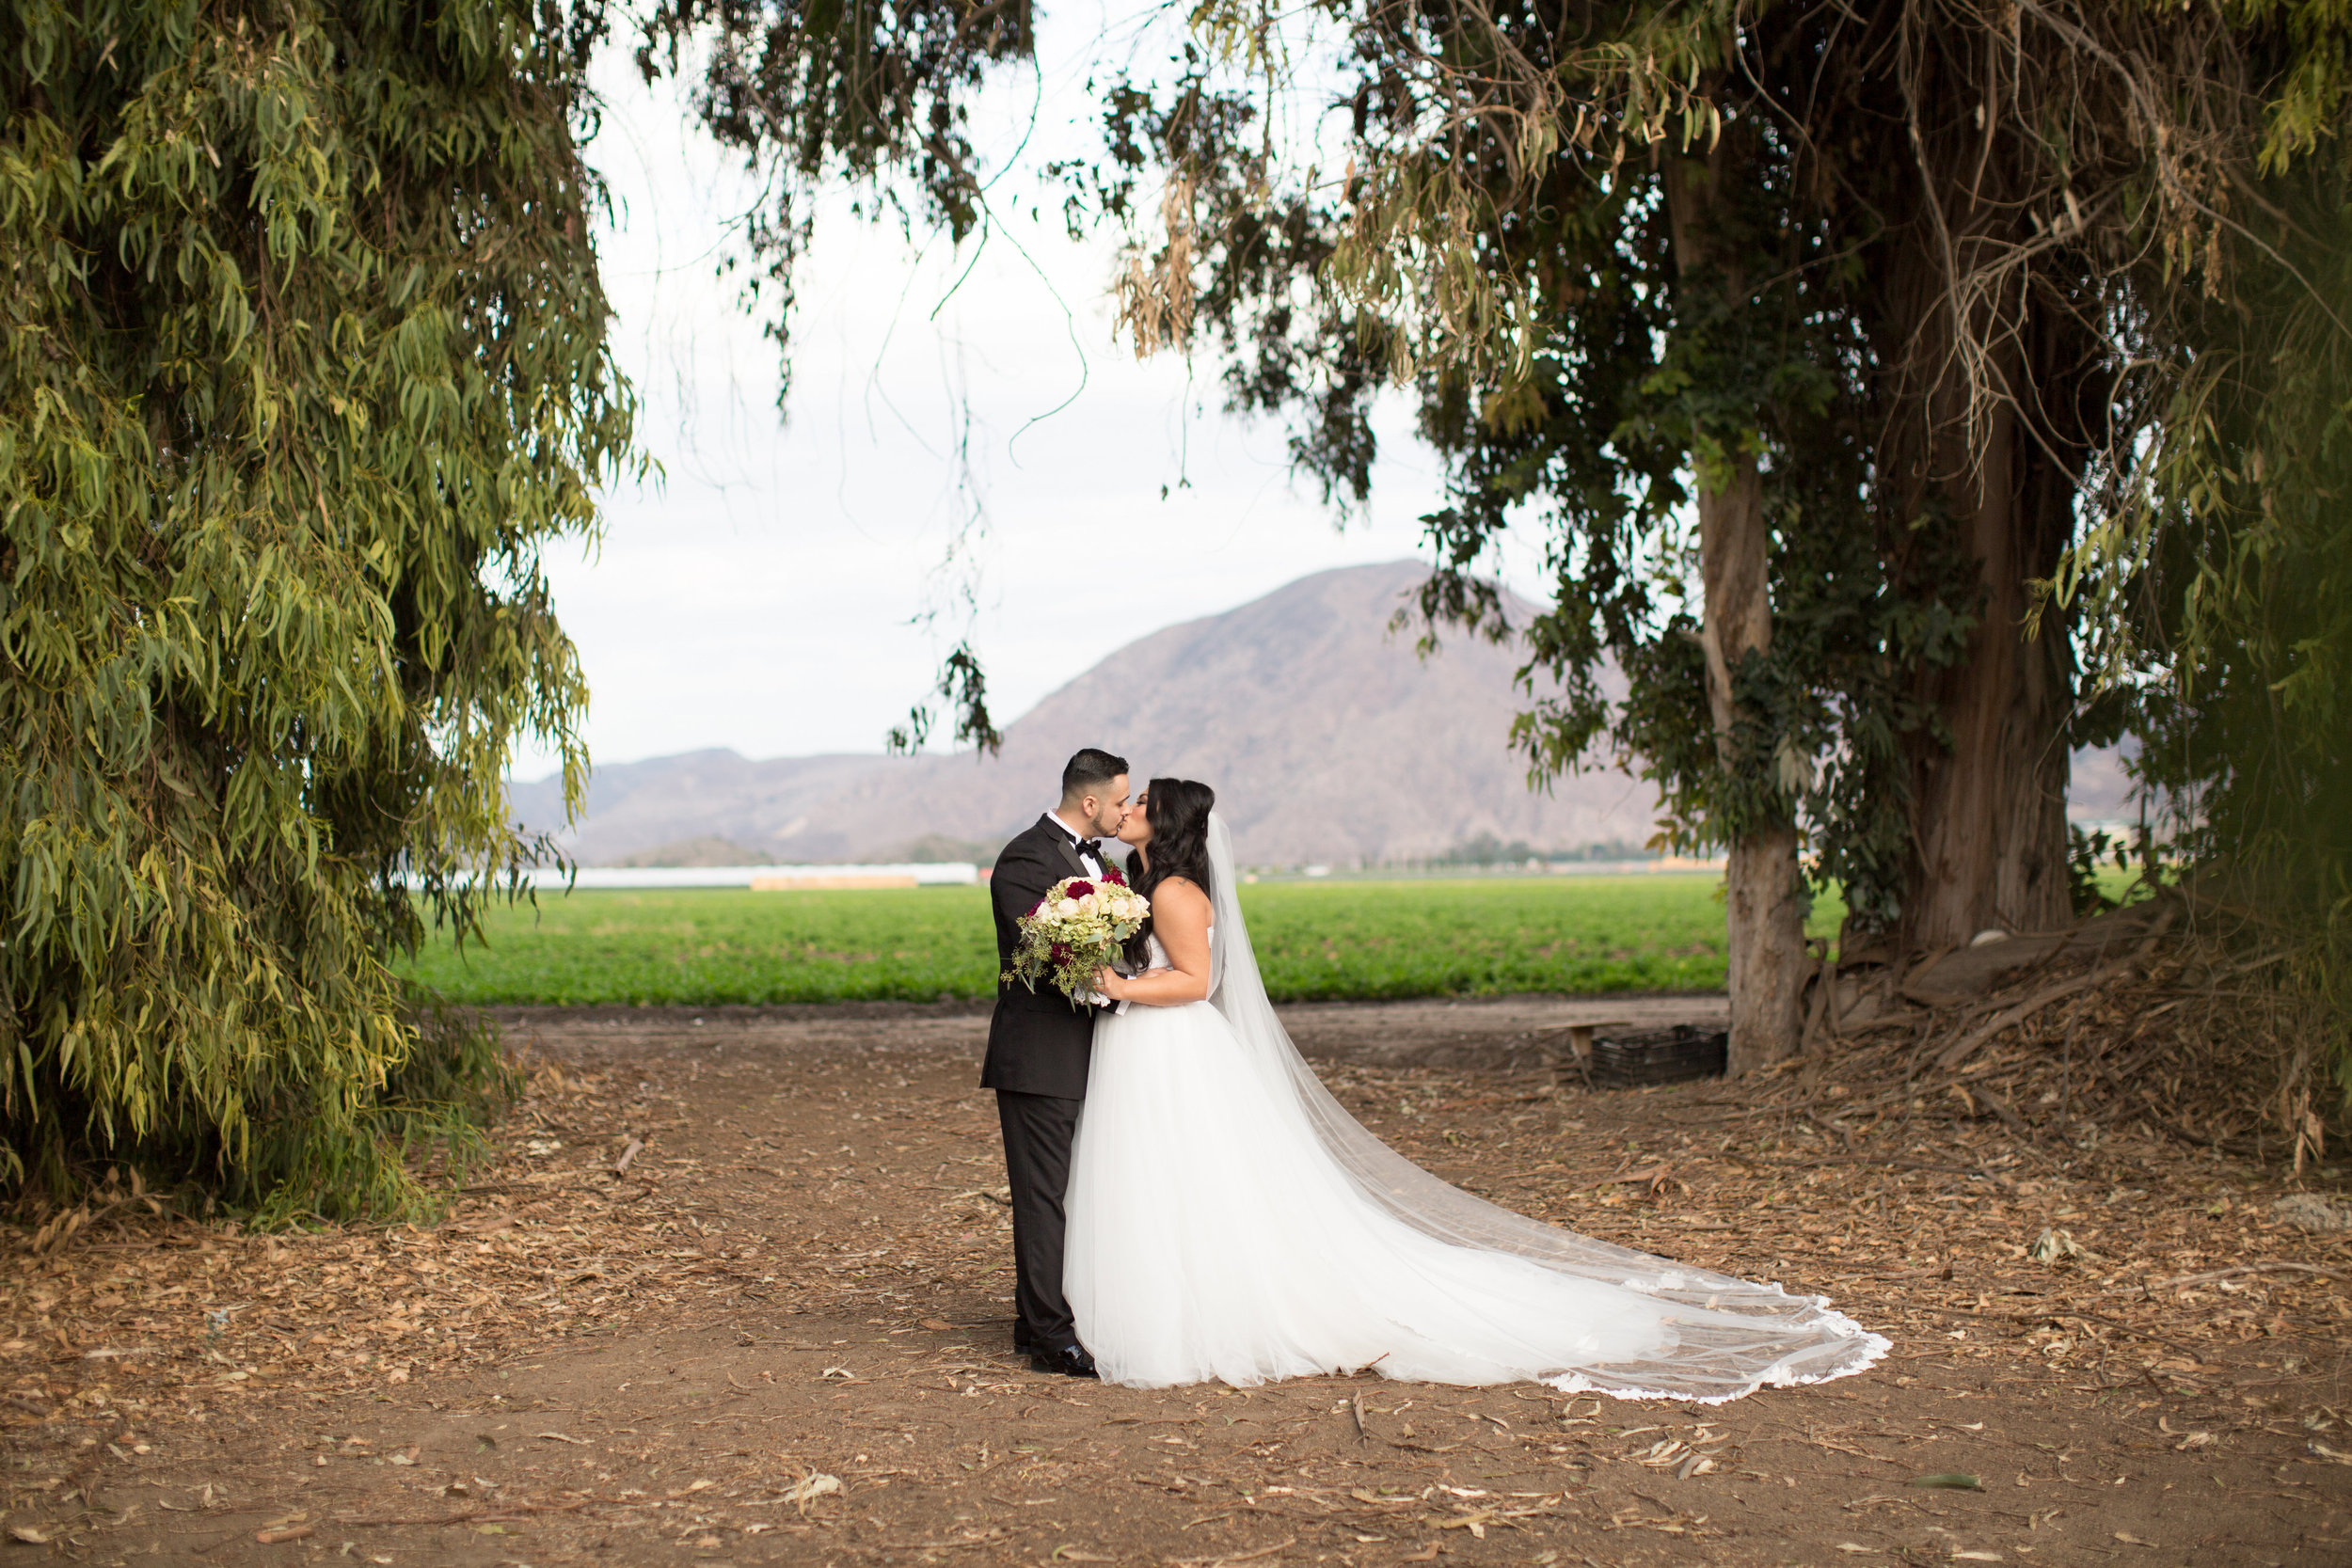 McCormick Home ranch wedding by Down Emery Lane.